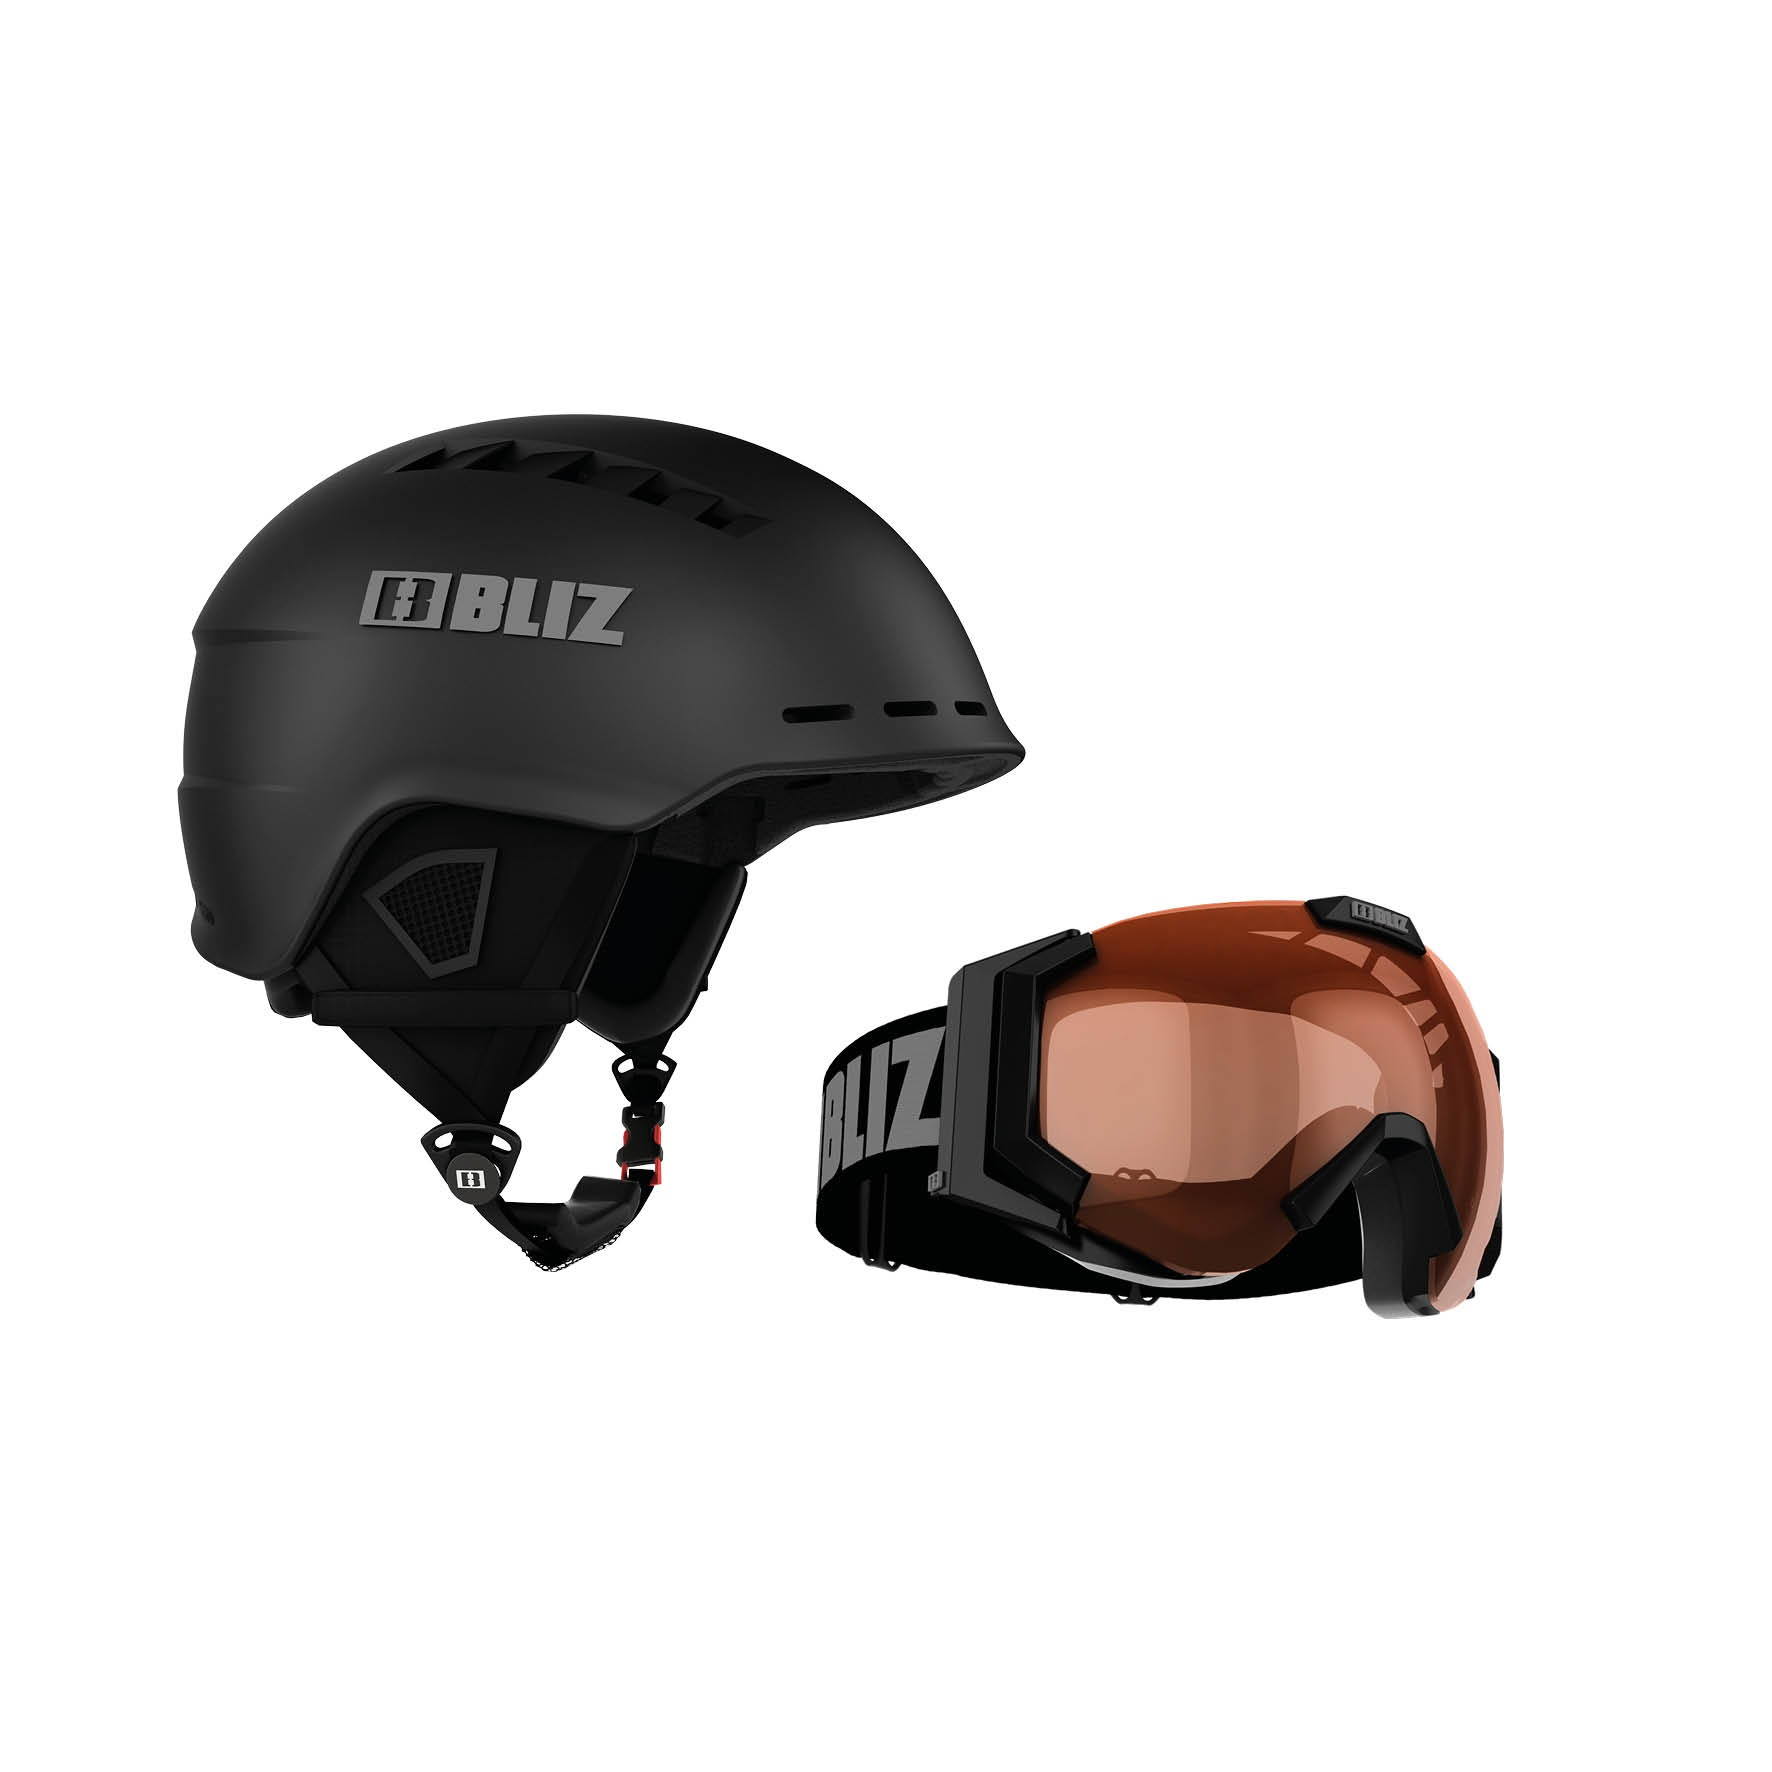 Cască Snowboard -  bliz Set Head Cover + Carver